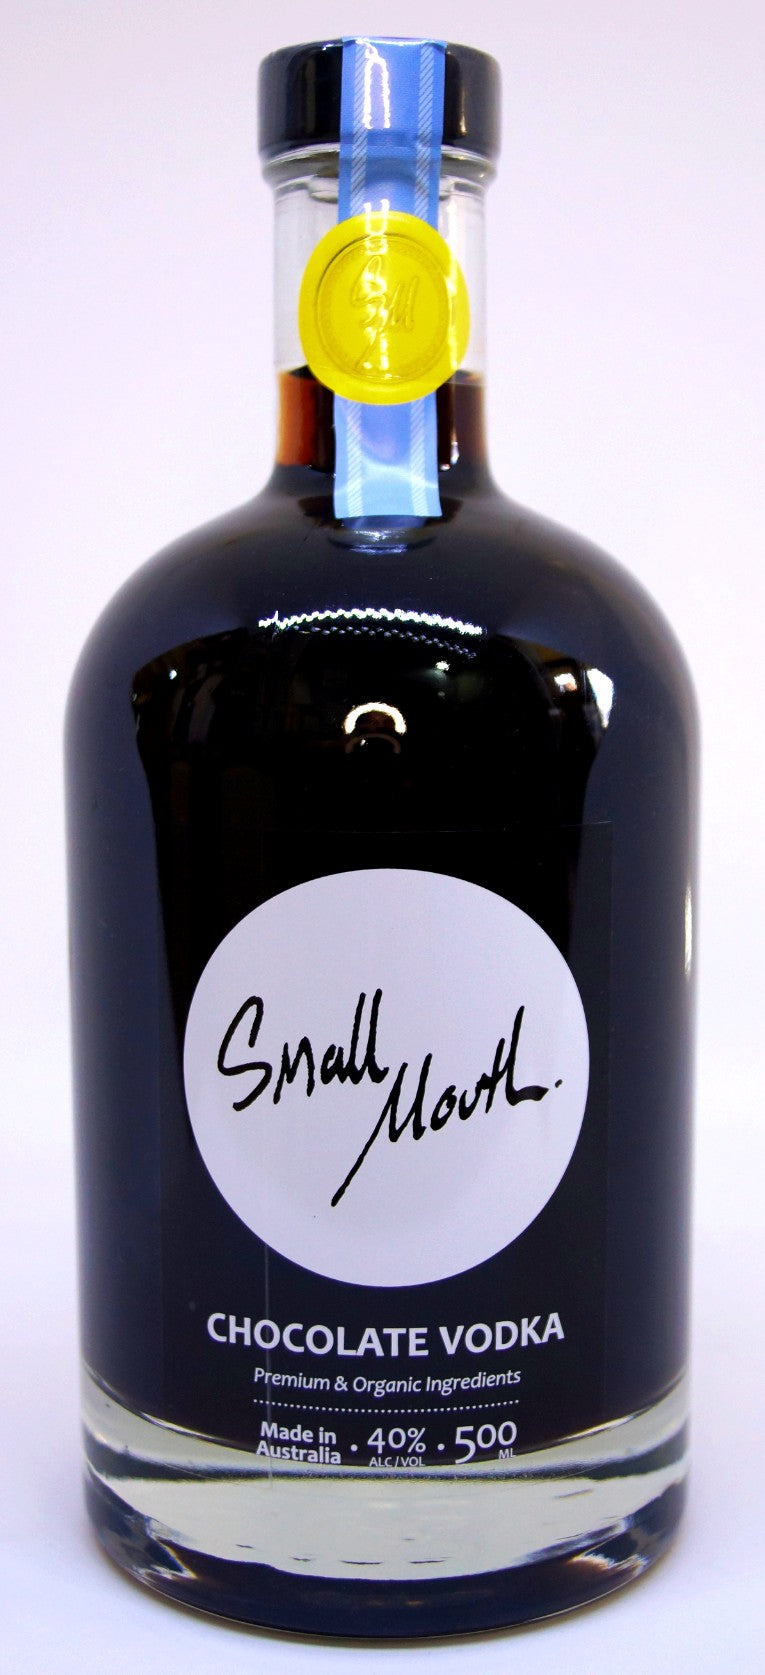 Small Mouth Chocolate Vodka